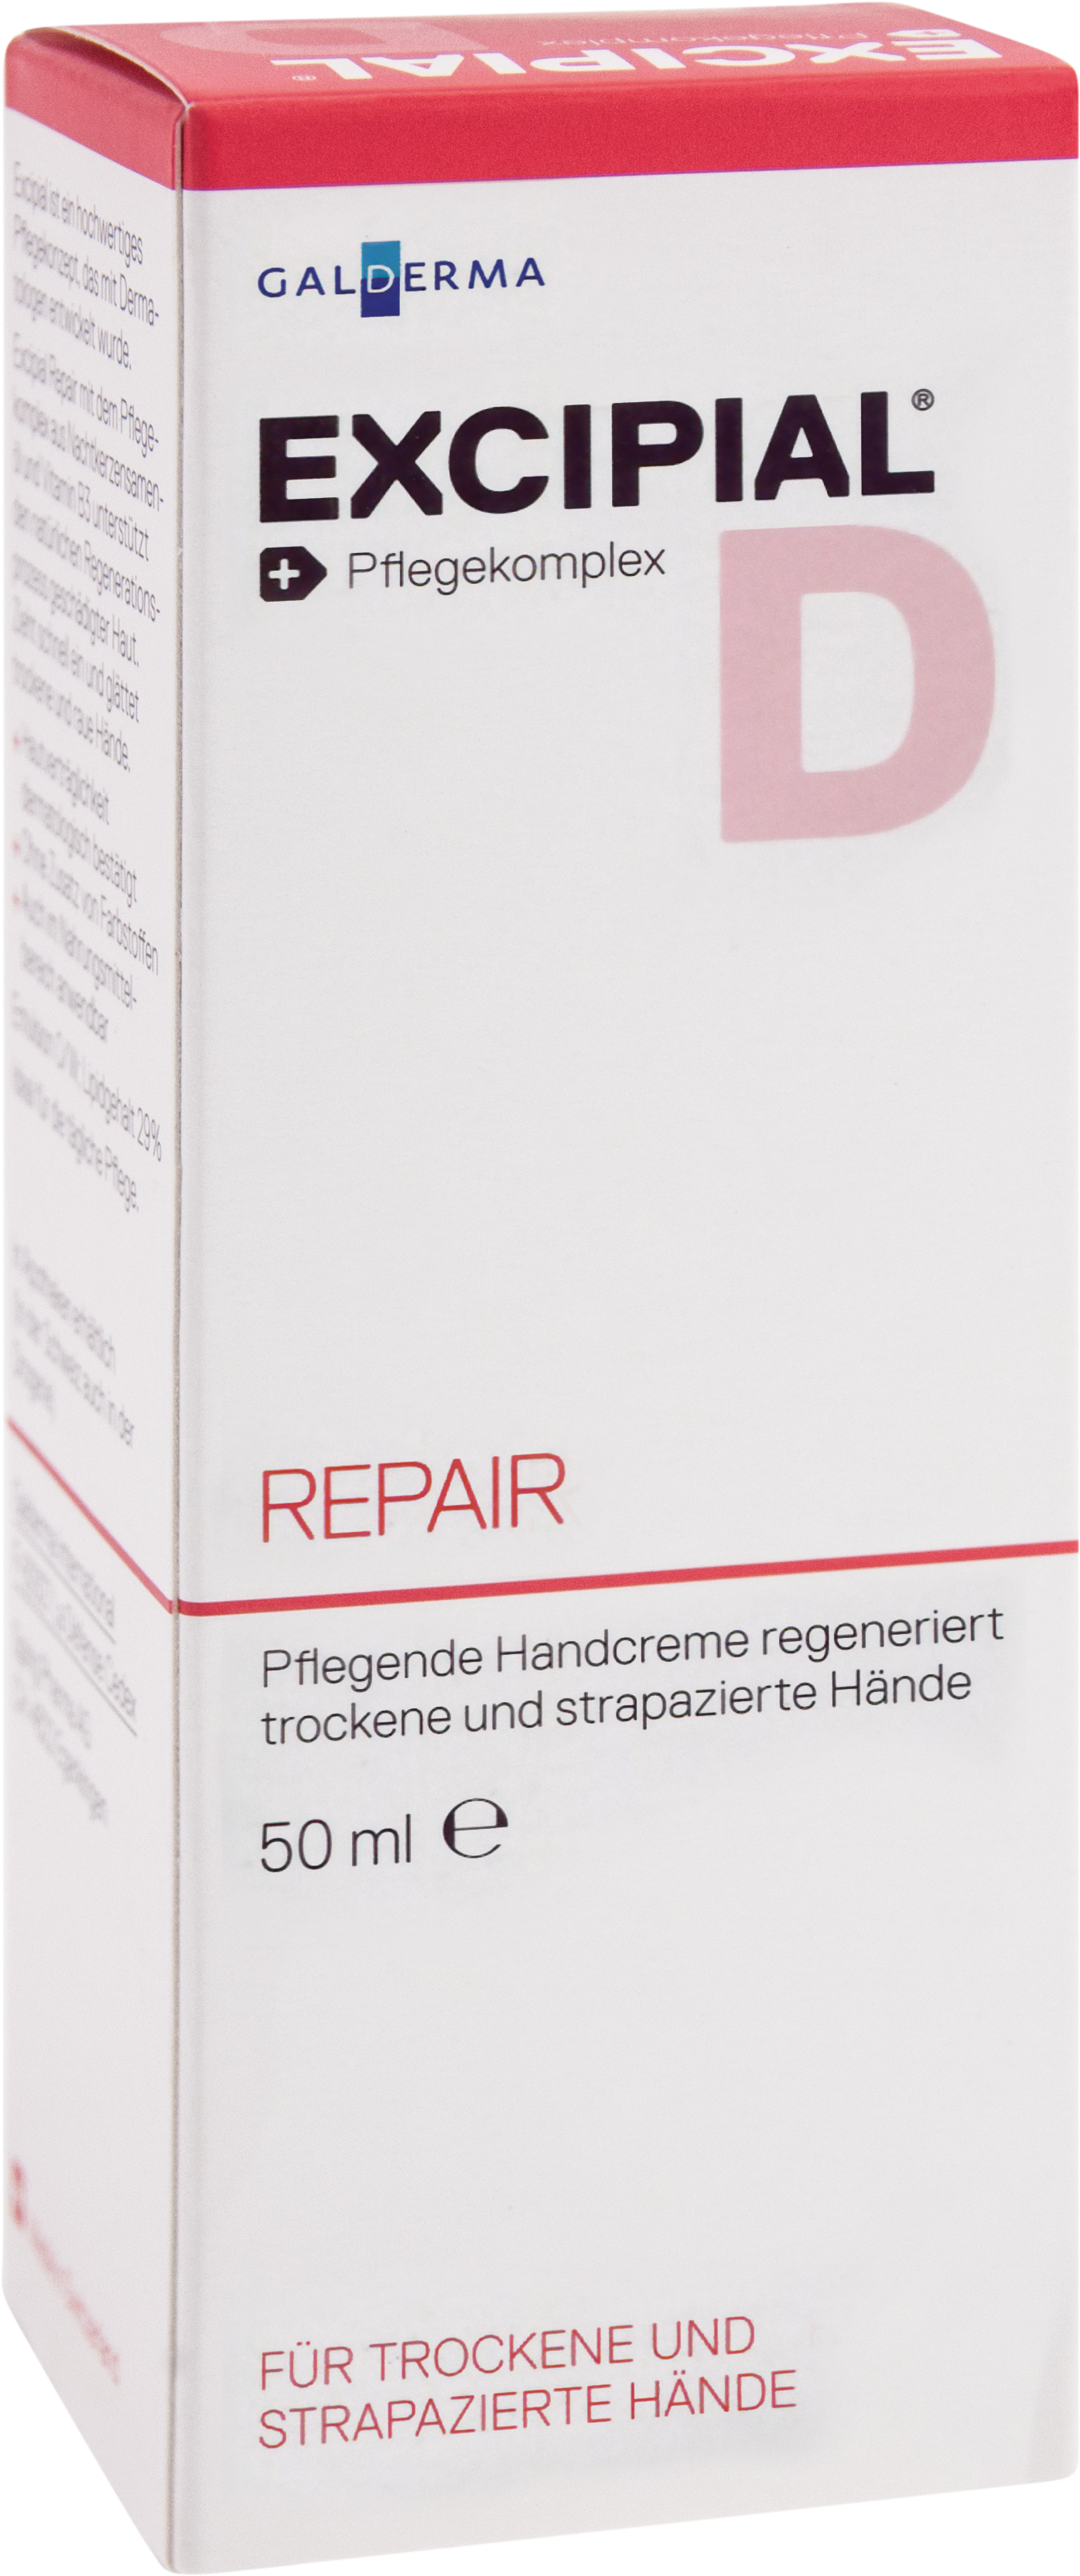 Excipial Repair